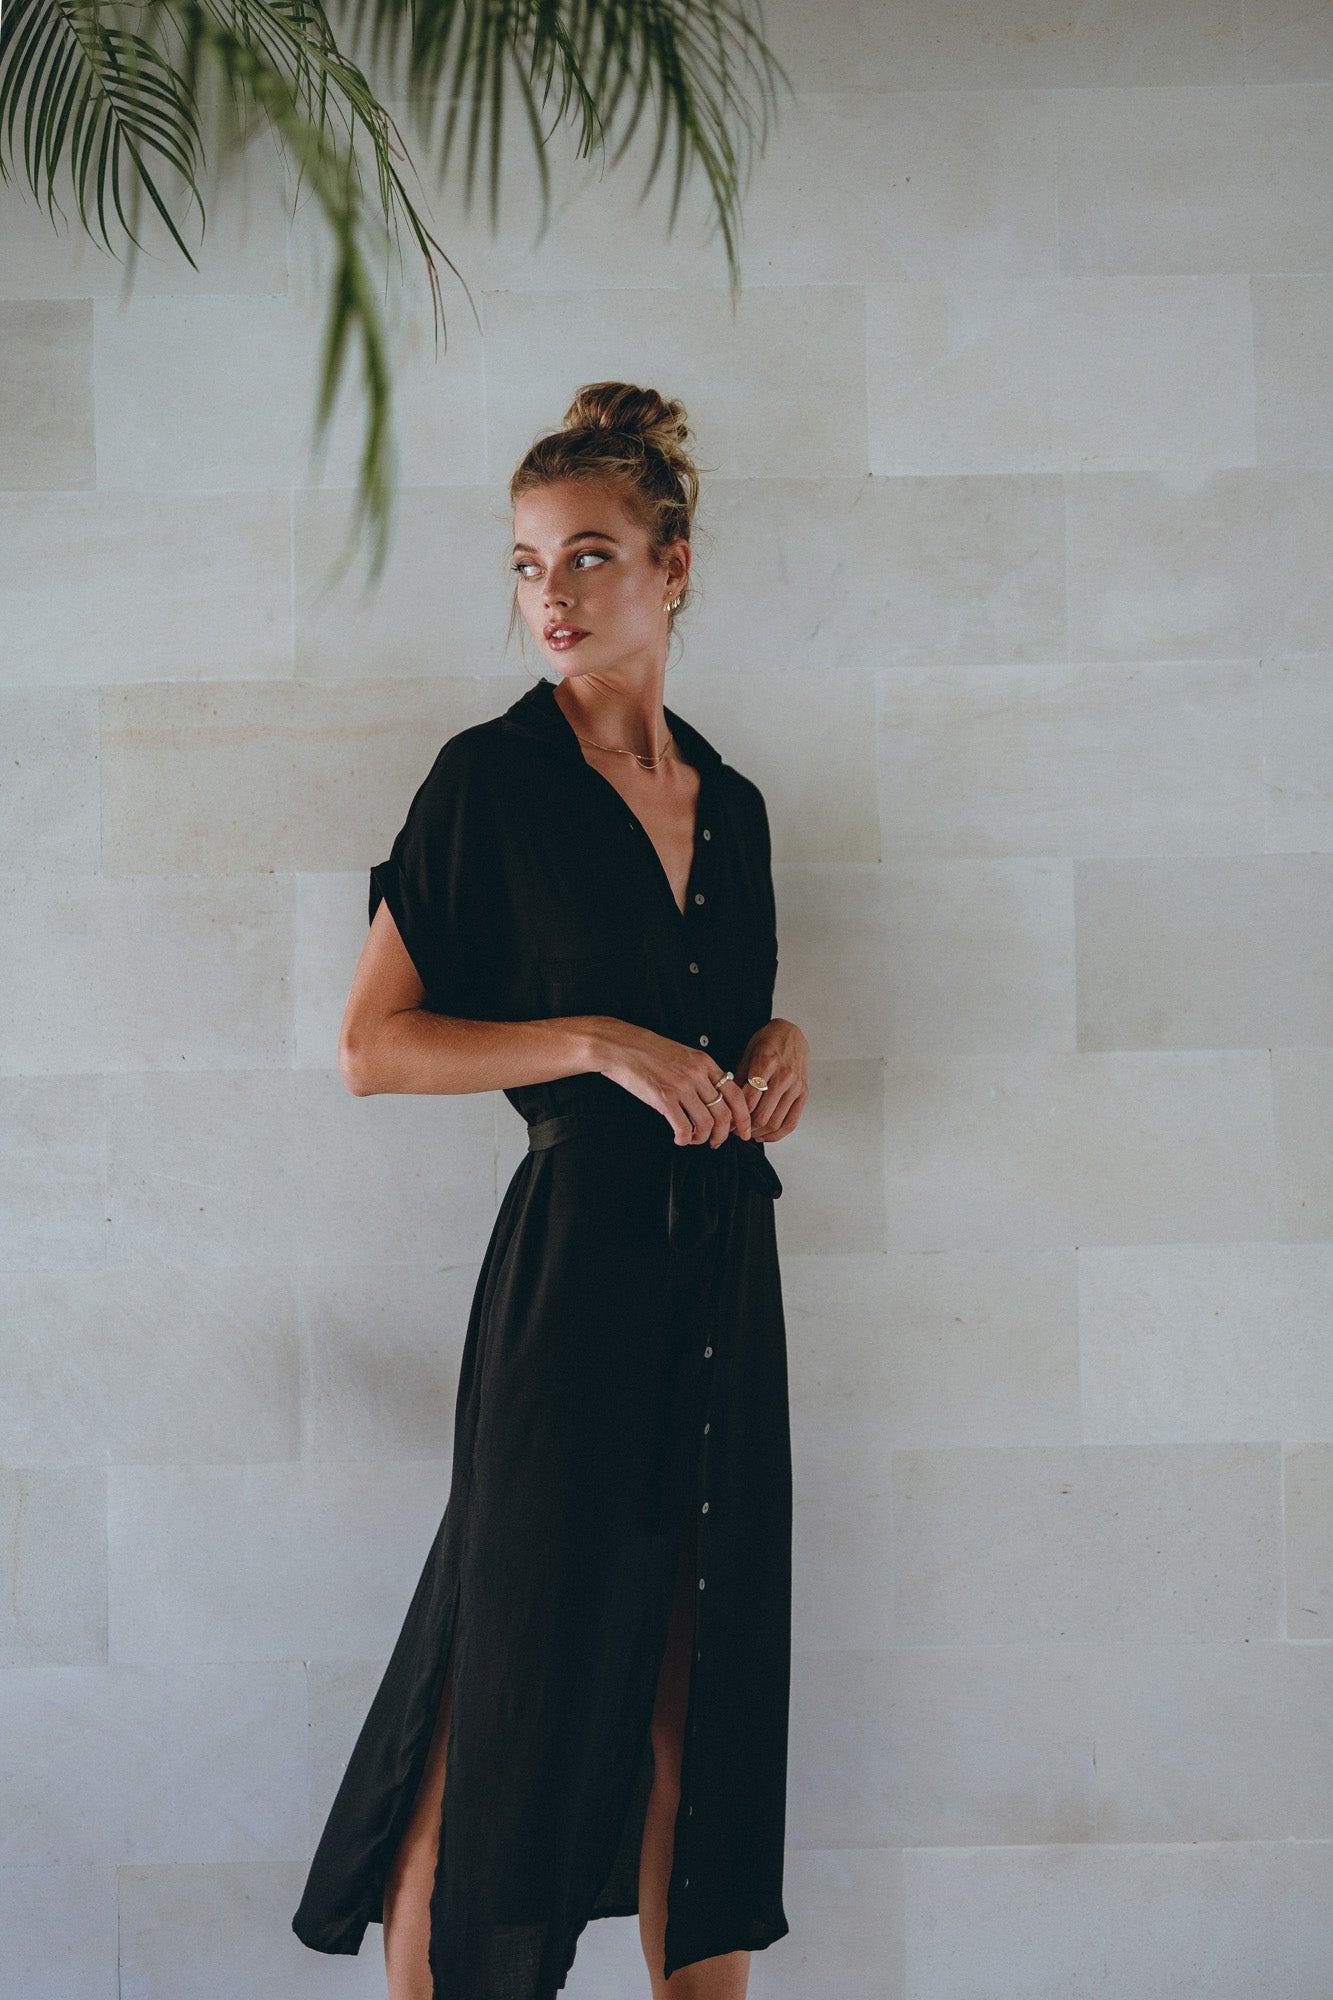 model presenting a classic black midi dress